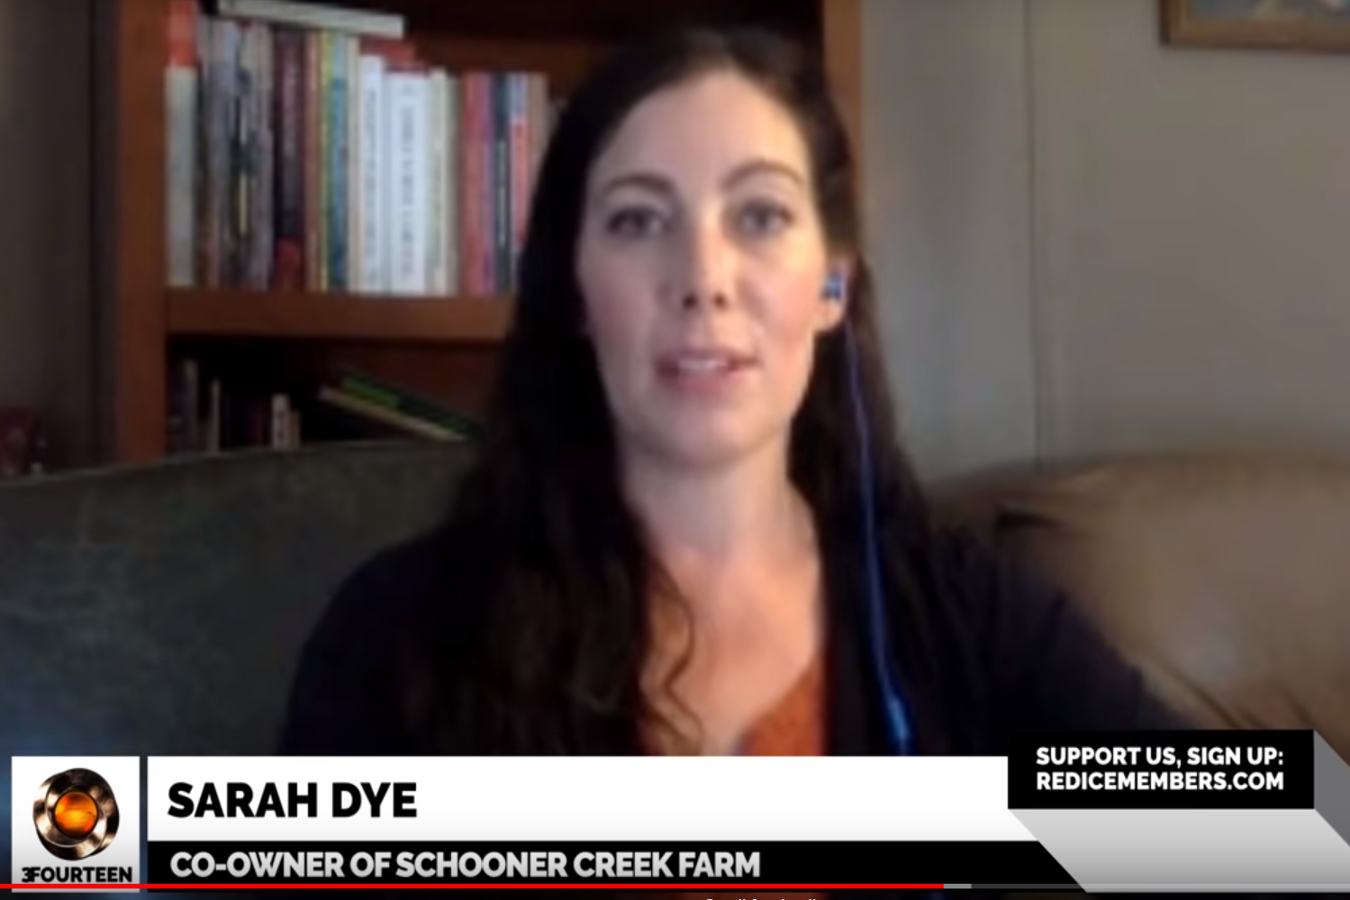 A screenshot of Sarah Dye during her interview with Red Ice TV host Lana Lokteff.